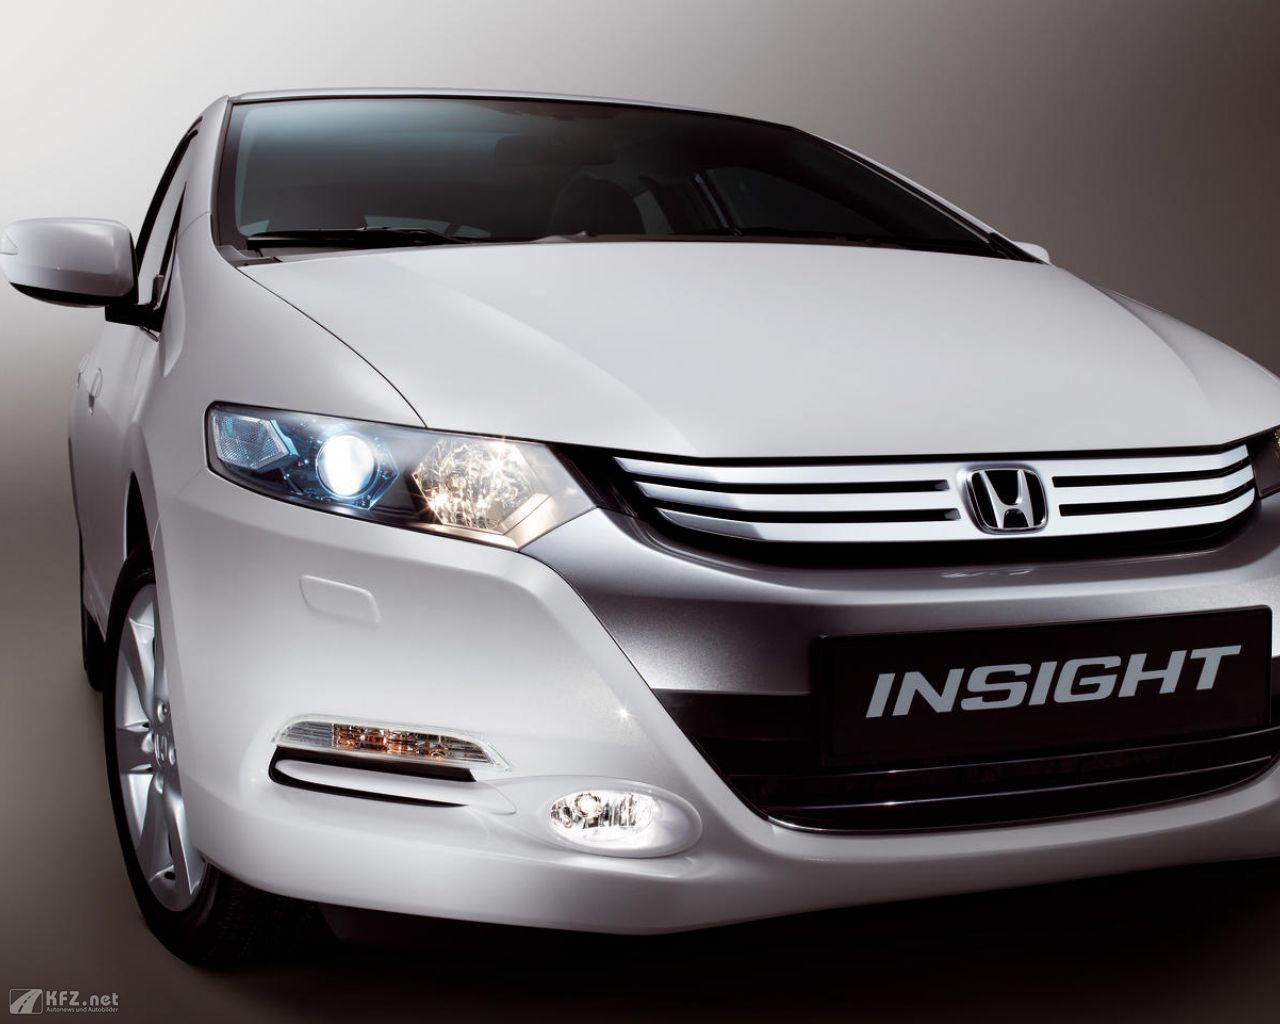 honda-insight-1280x1024-151